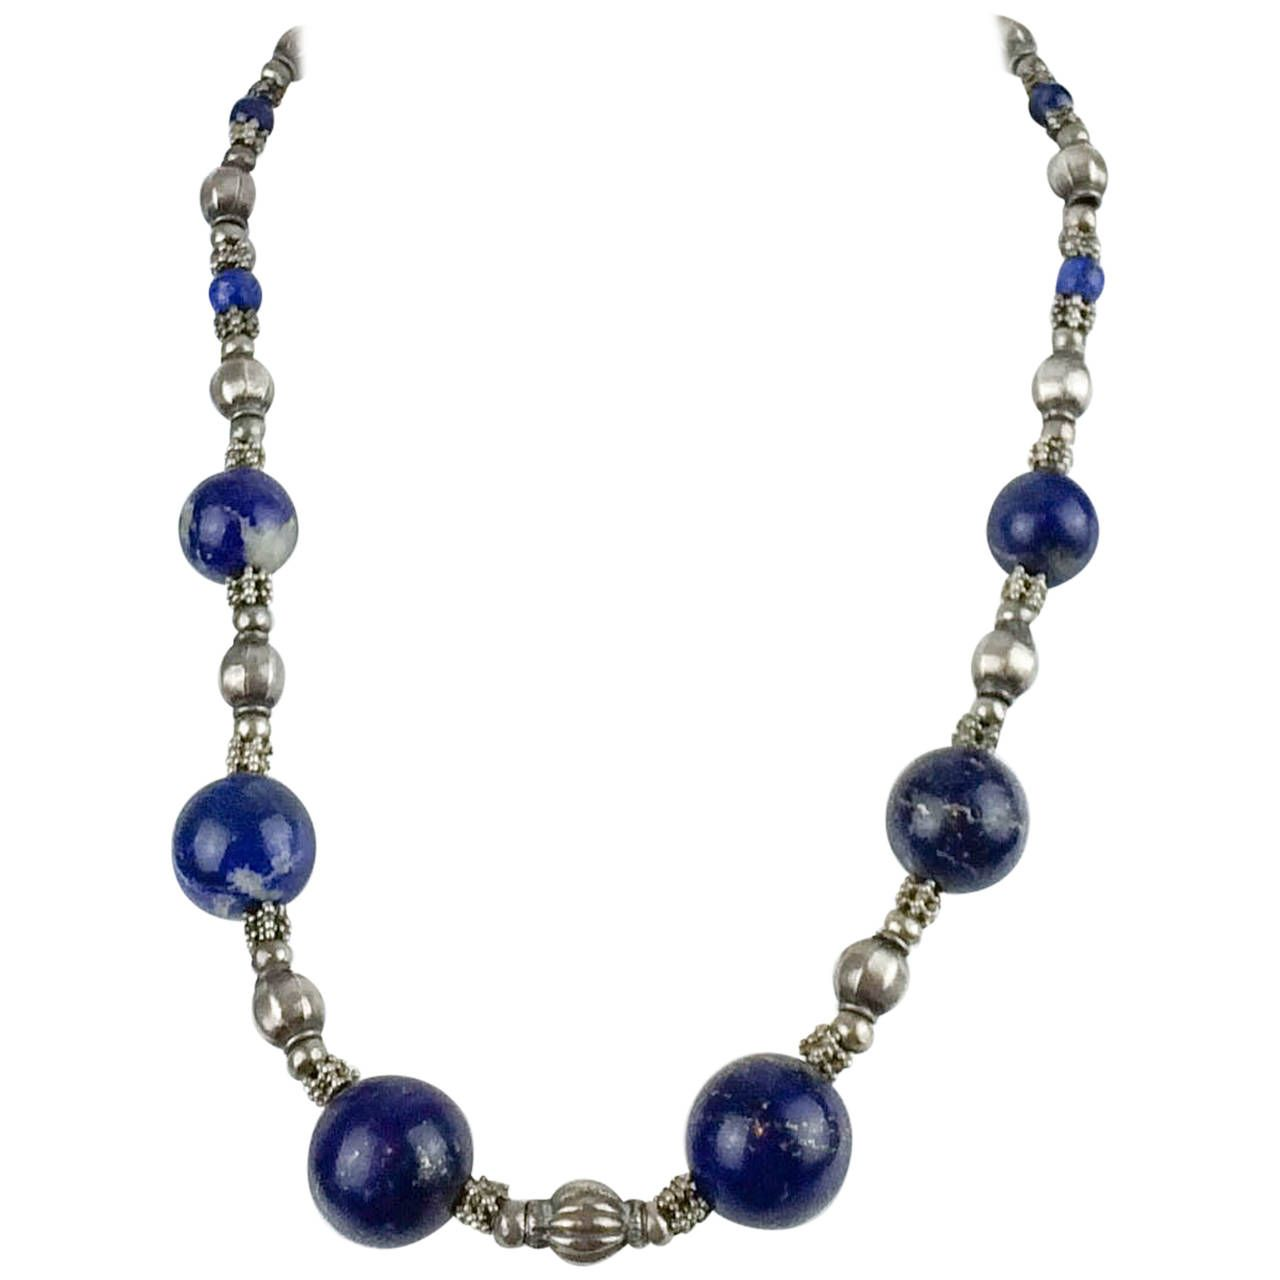 Silver and Lapis Lazuli Necklace - 1970s | From a unique collection of vintage beaded necklaces at https://www.1stdibs.com/jewelry/necklaces/beaded-necklaces/